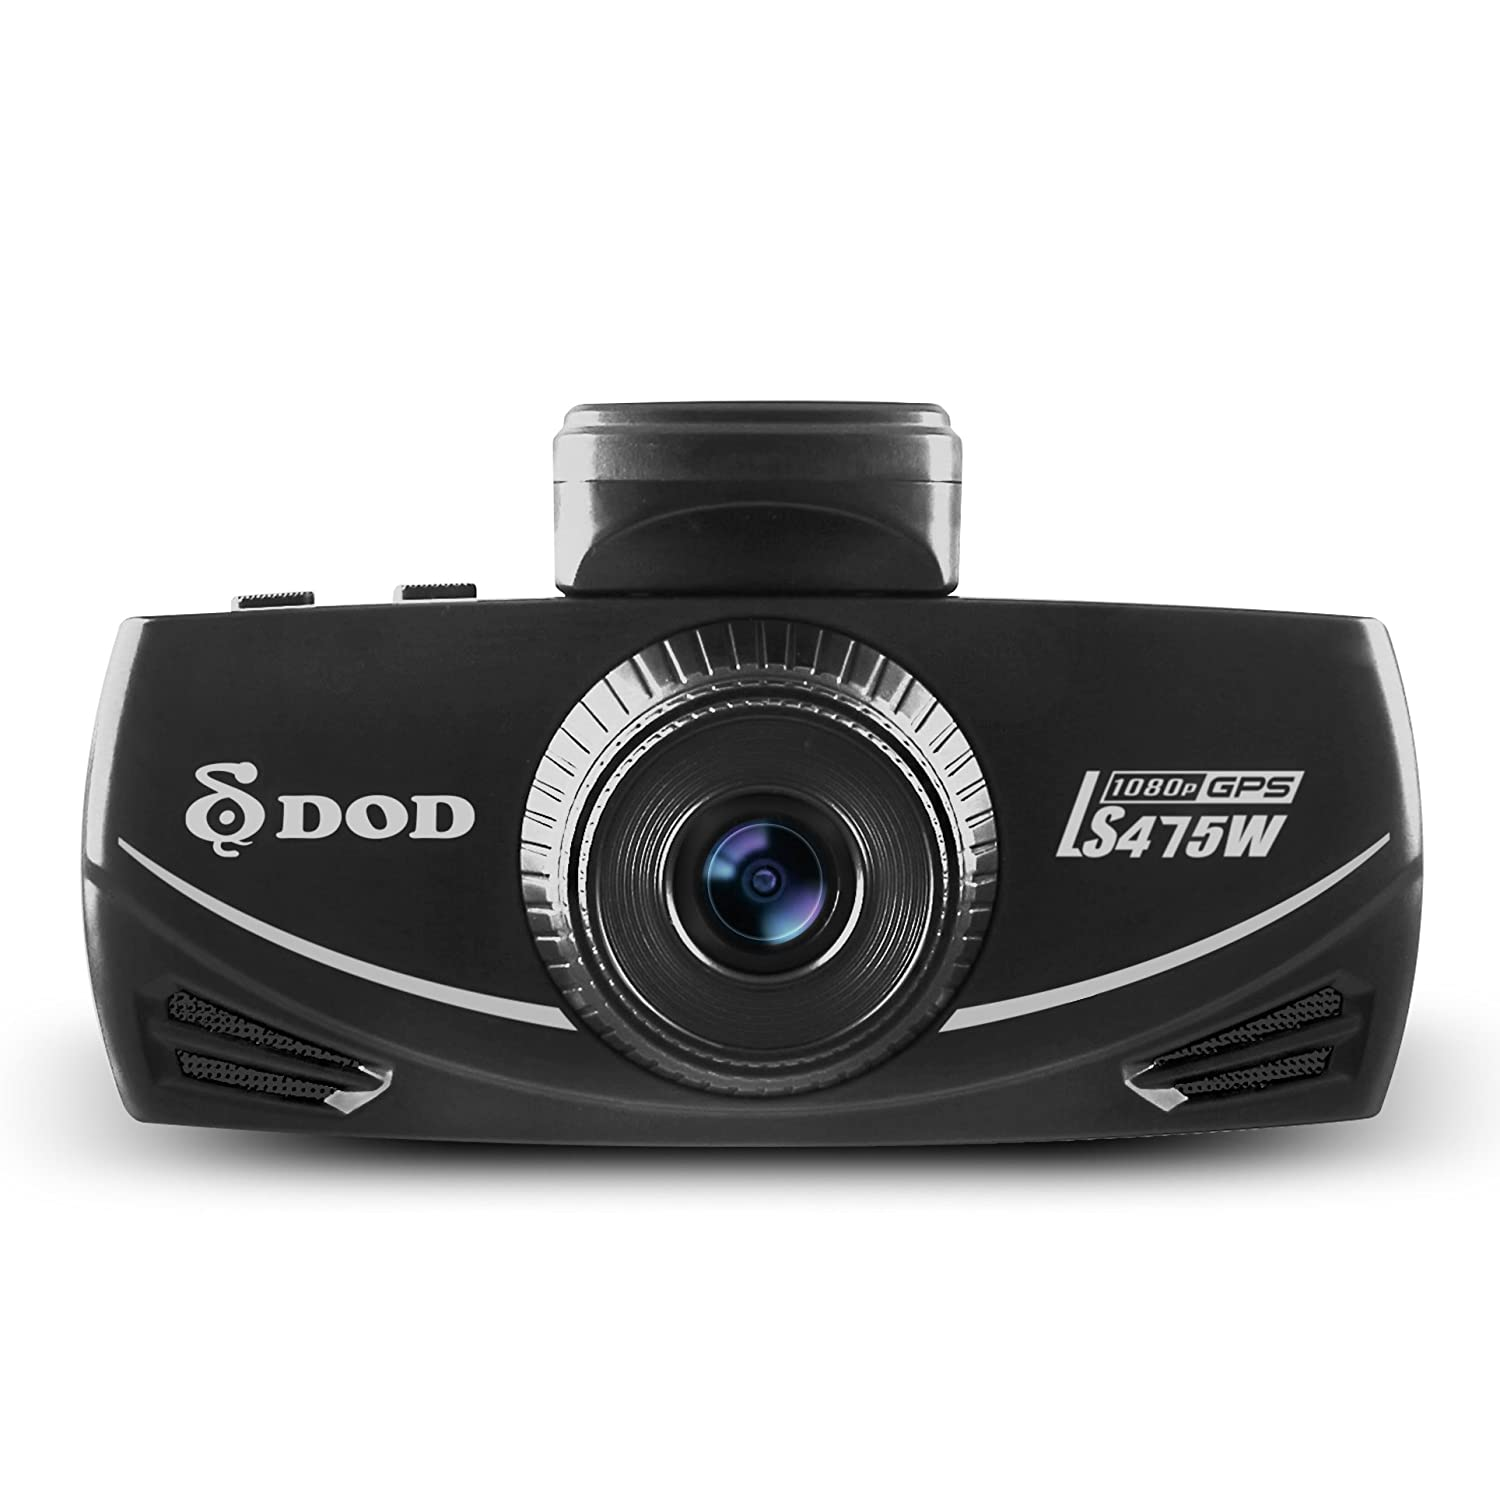 """DOD LS475W 1080P@60fps Dash Cam, 2.7"""", Sony STARVIS,145° Ultra Wide Angle, Super Night Vision, Parking Surveillance, GPS Logging, Traffic Camera Alert, Free 16GB Micro SD Card Included"""